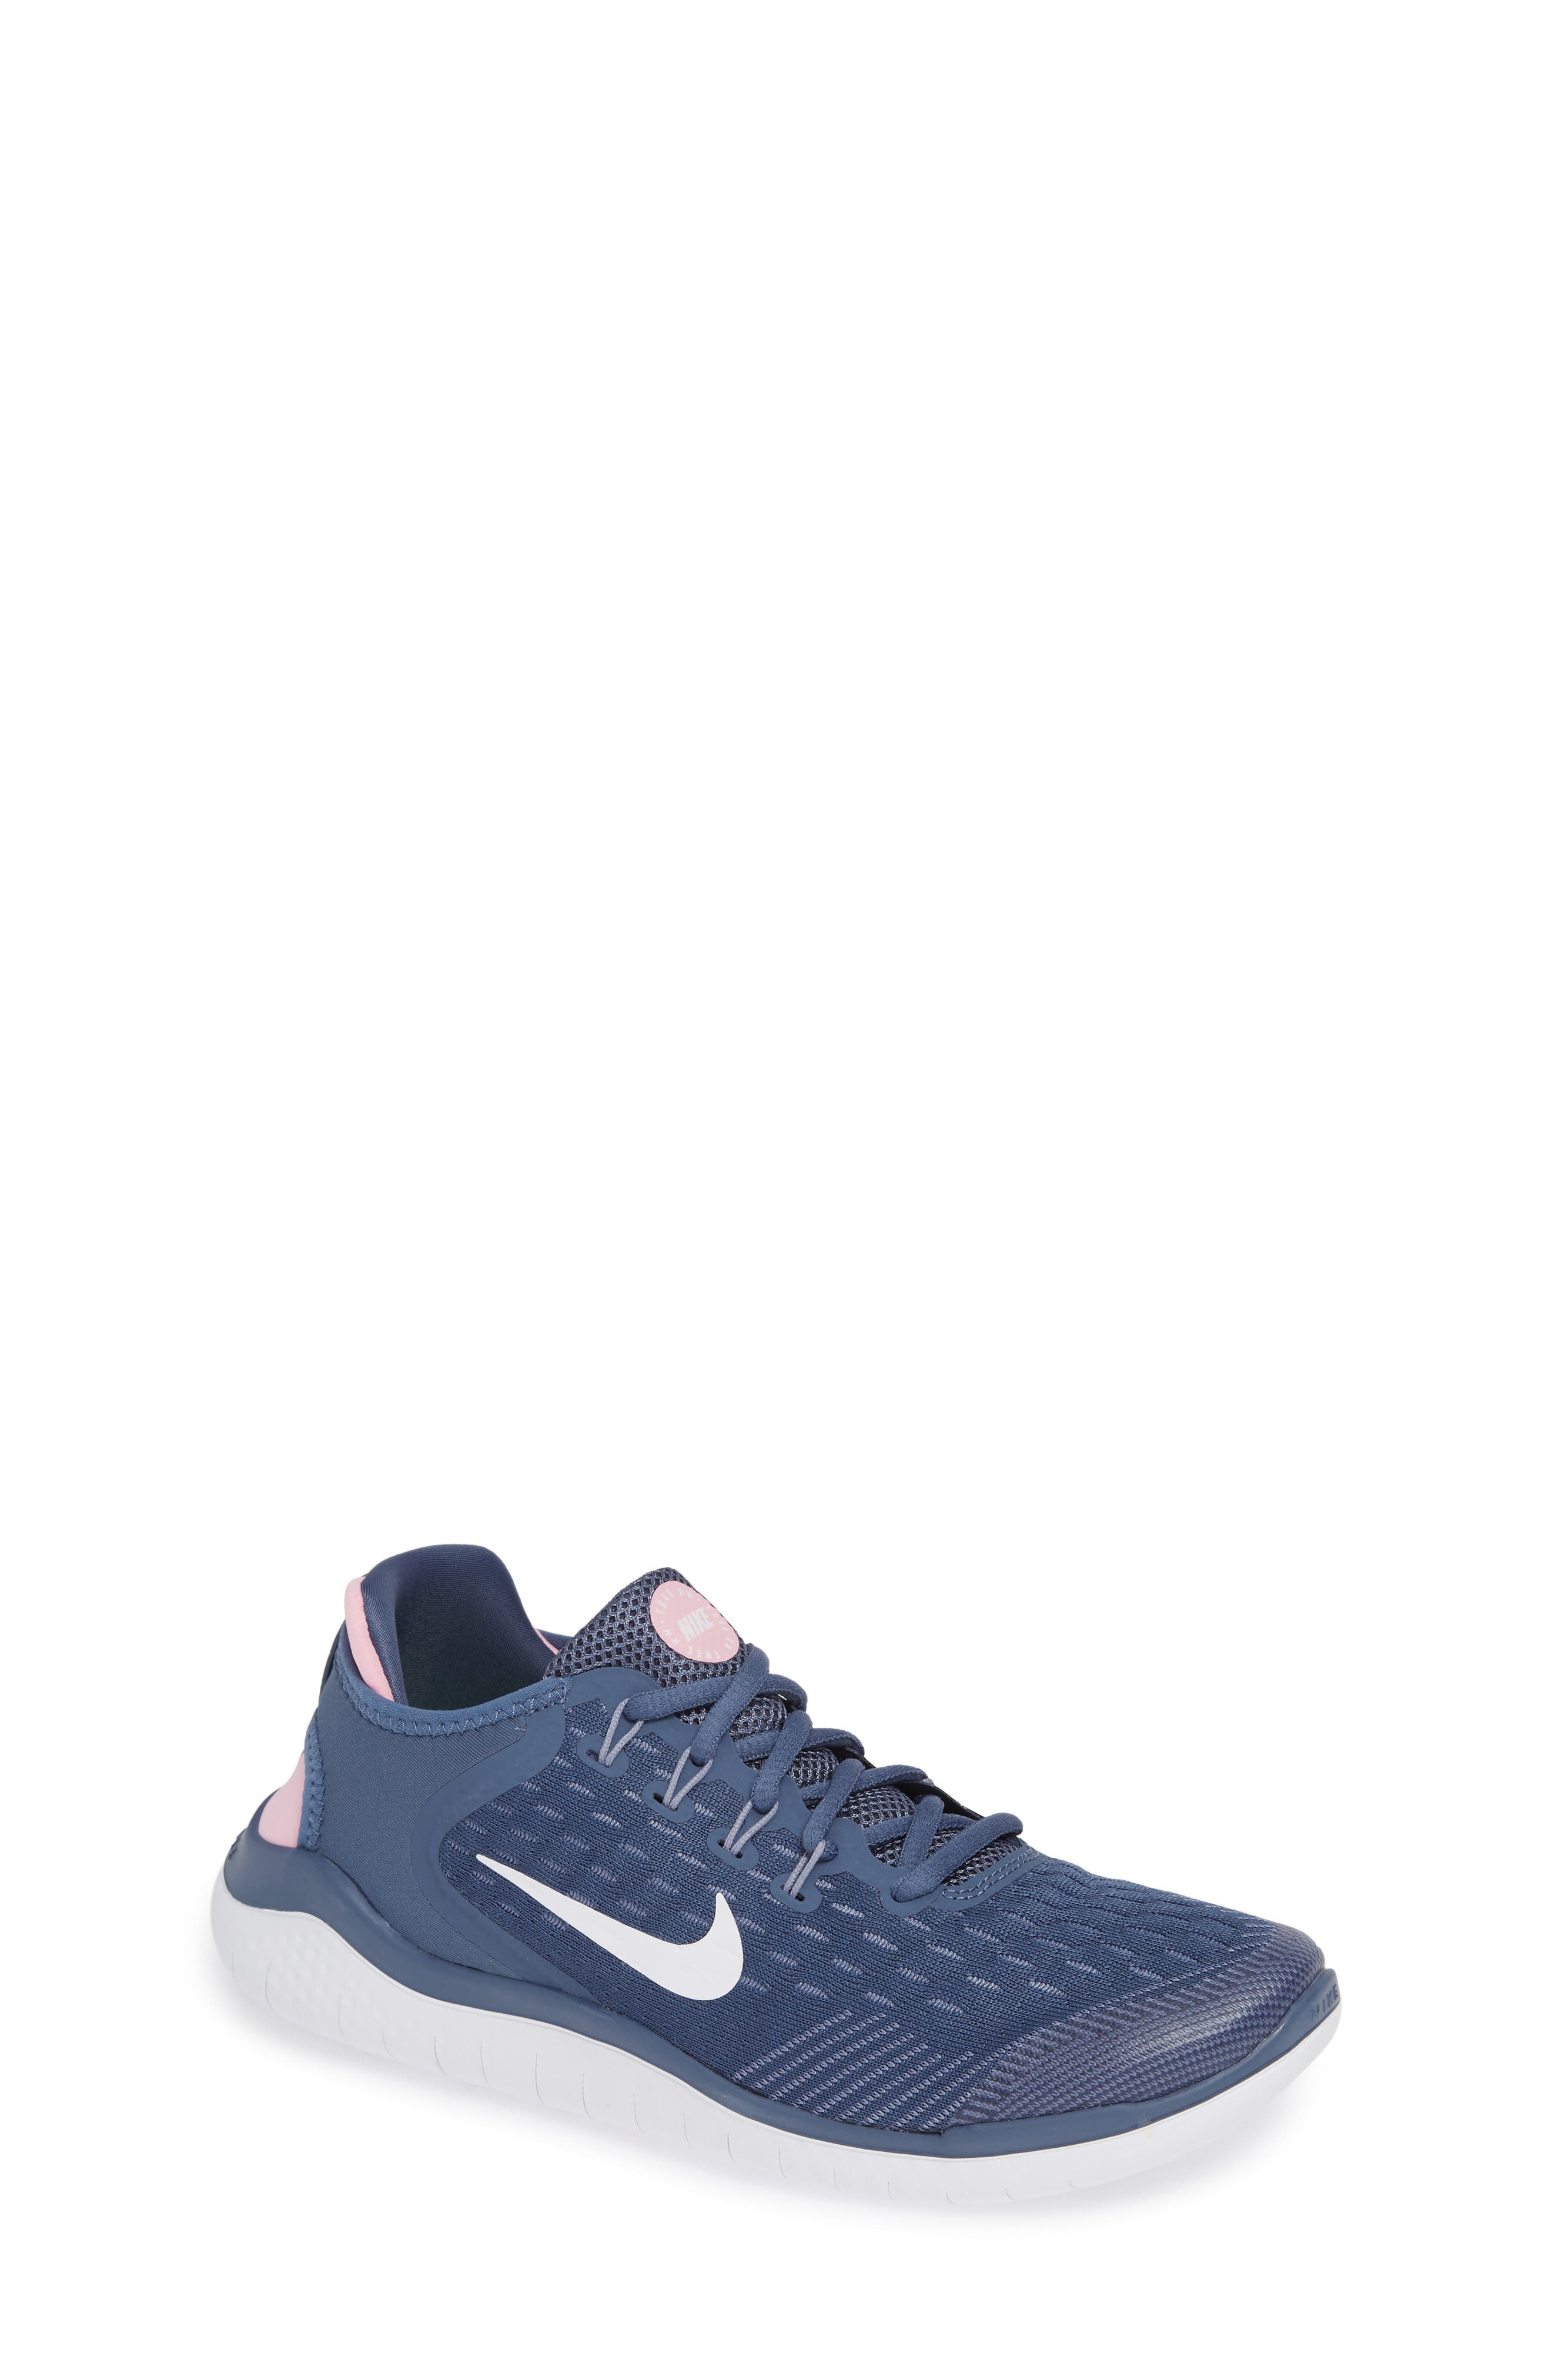 Free RN 2018 Running Shoe,                         Main,                         color, BLUE/ WHITE/ SLATE/ PINK